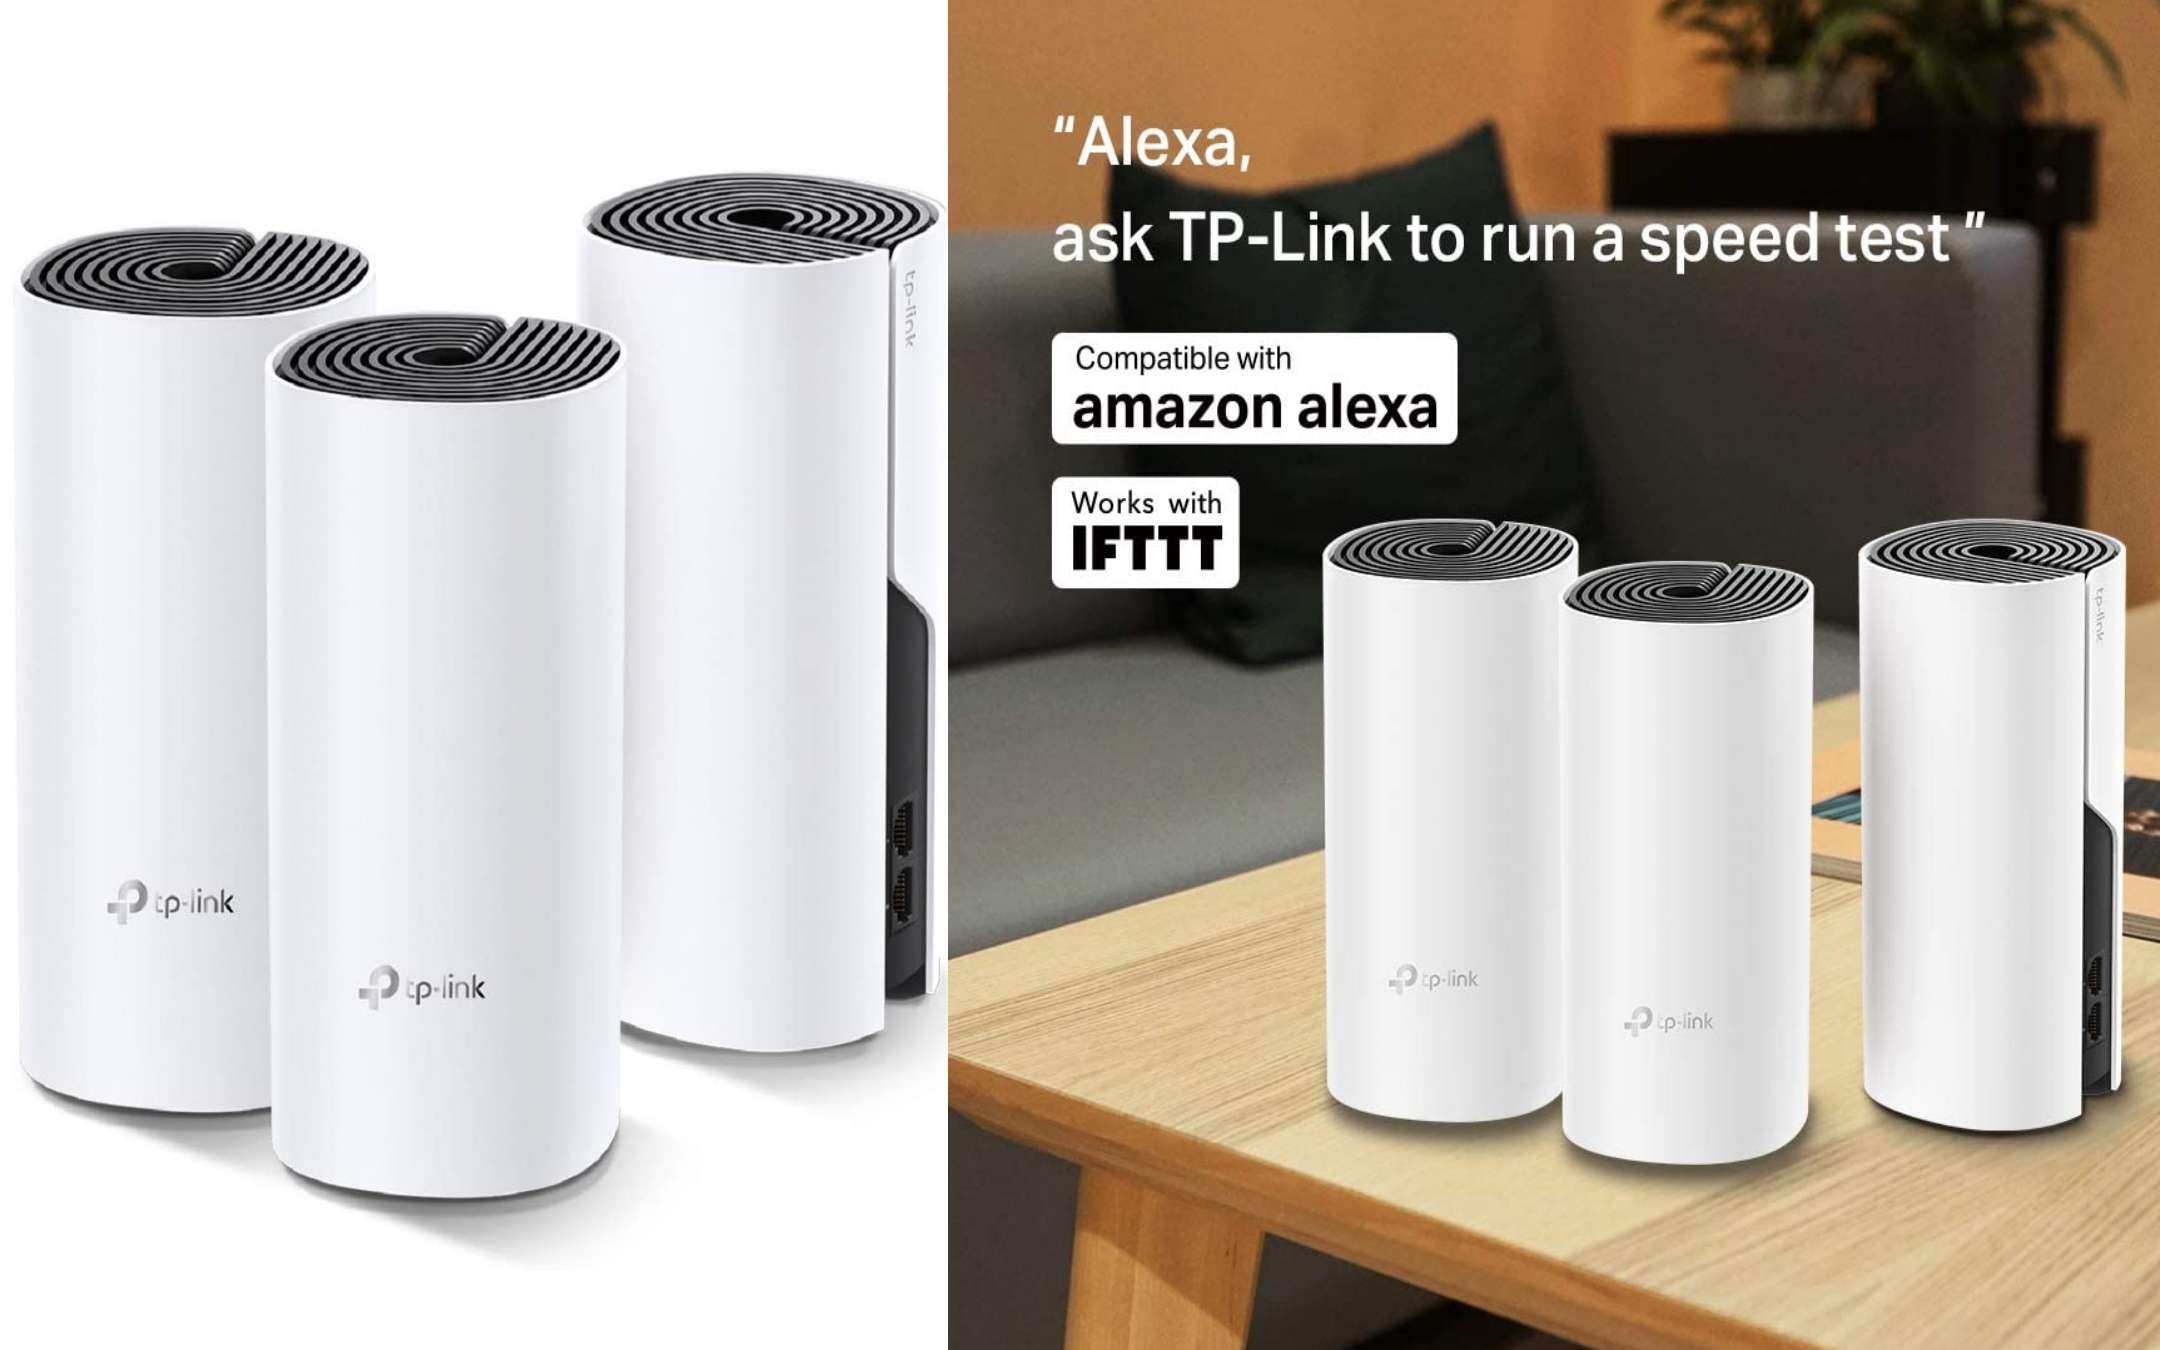 TP-Link Deco M4: on offer one of the best kits for mesh nets